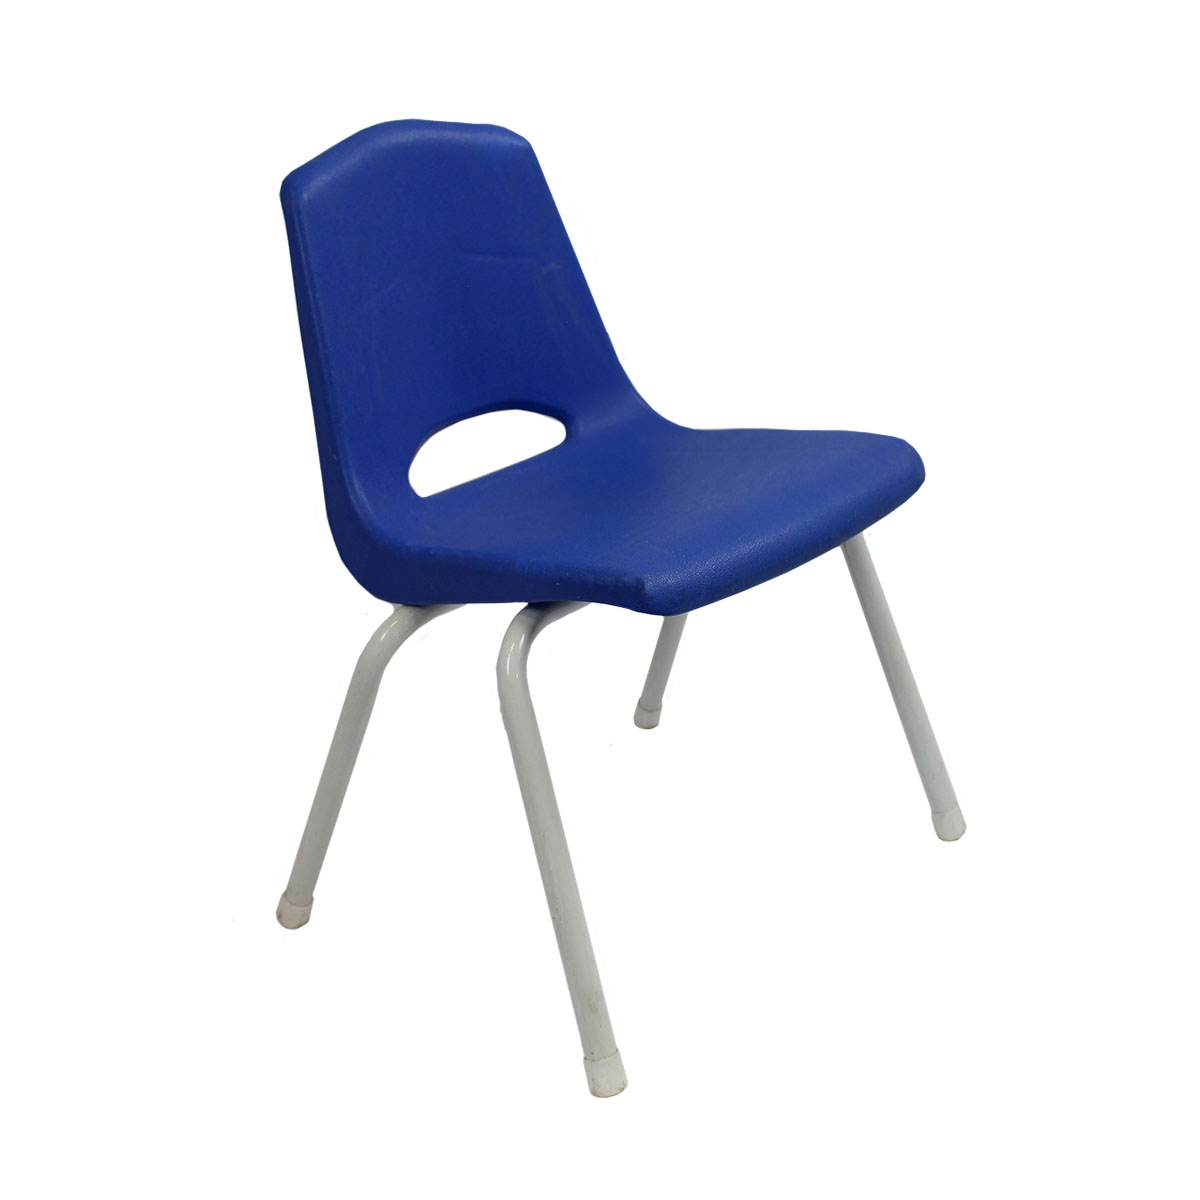 Chair Blue Seat White Leg Stacking Child Size